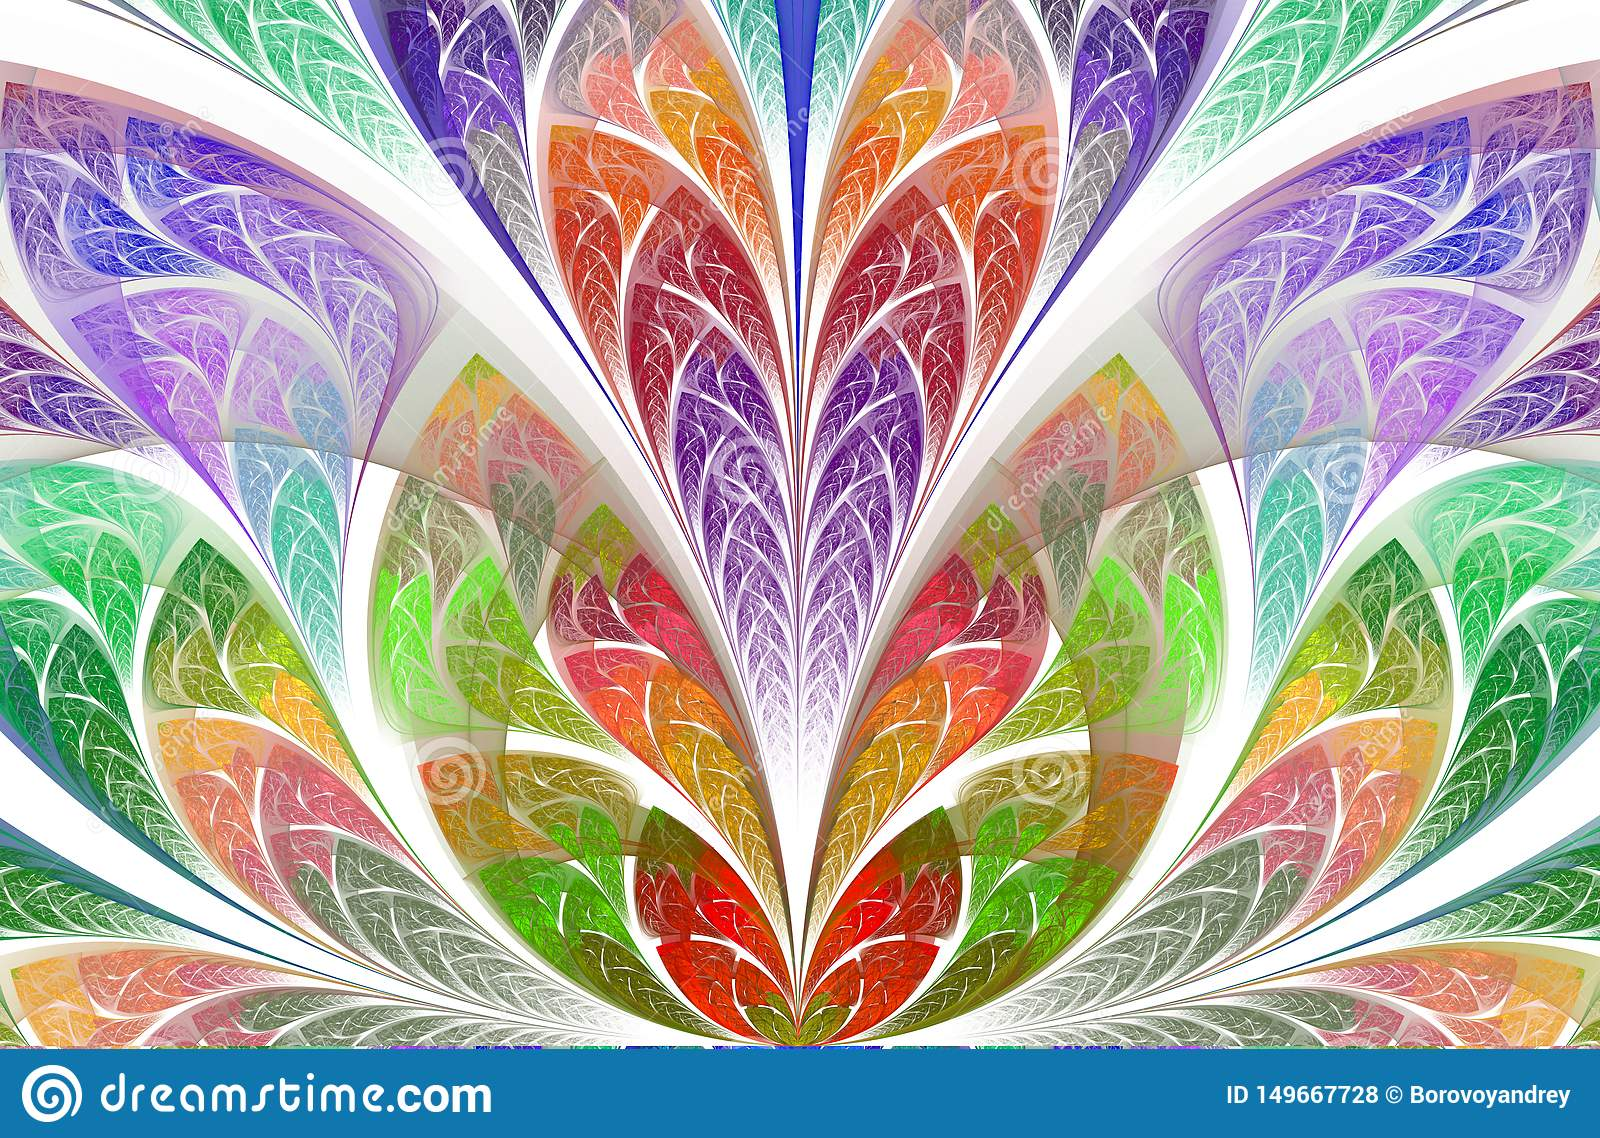 Symmetrical And Magic Floral Fractal Pattern Beautiful Flower In Multicolor Palette Stock Illustration Illustration Of Line Fabulous 149667728